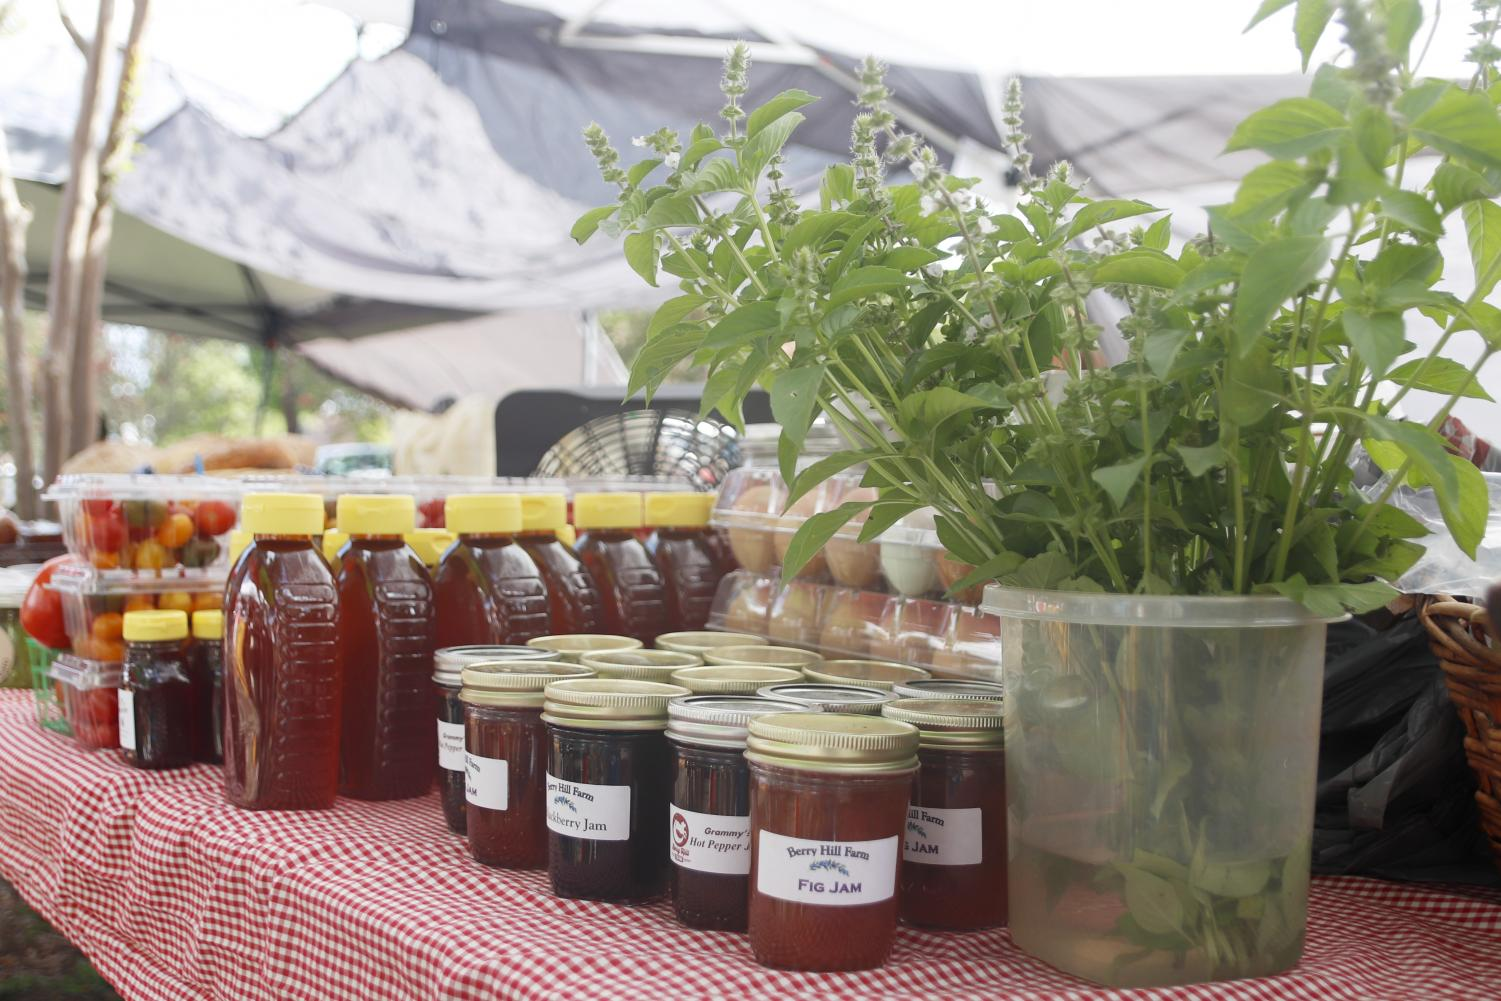 A weekly farmers market is held on Saturdays from 8 a.m. to 12 p.m. at #2 W. Thomas St. where students can buy fresh produce and homemade items from vendors.